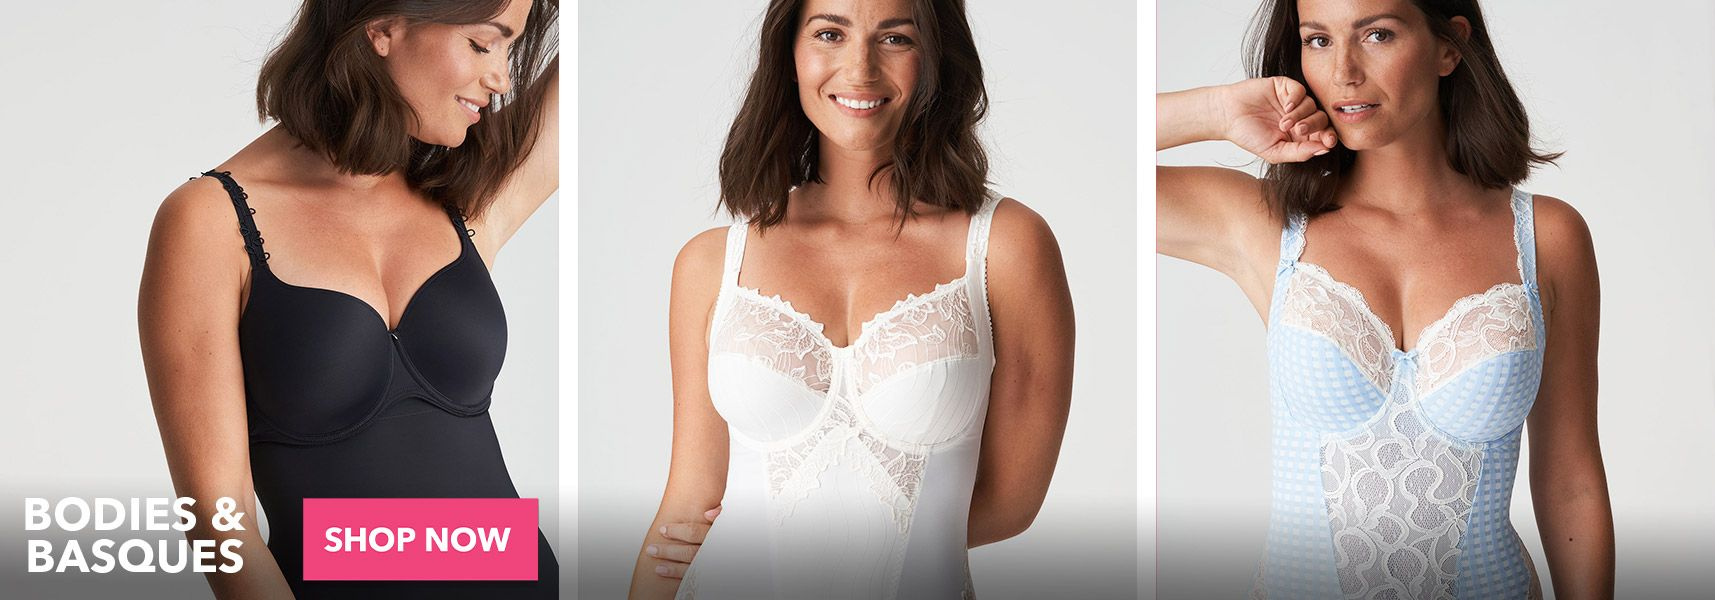 shop shapewear bodies and basques button